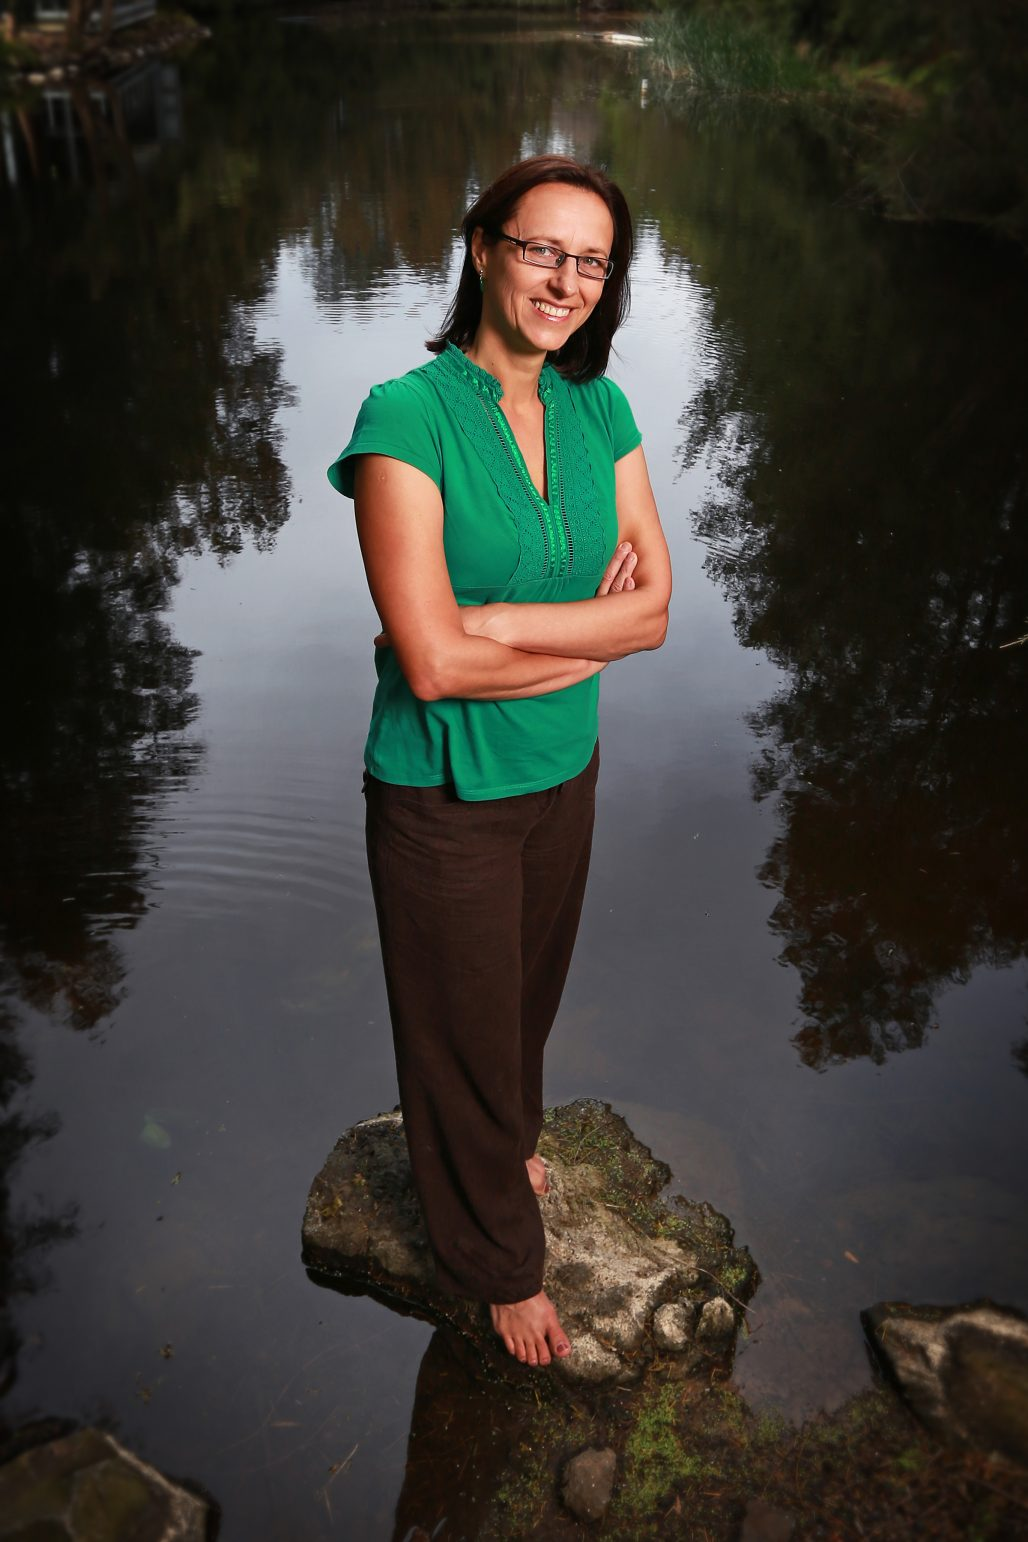 Ana Deletic standing on a rock with a body of water behind her. Photo: University of NSW